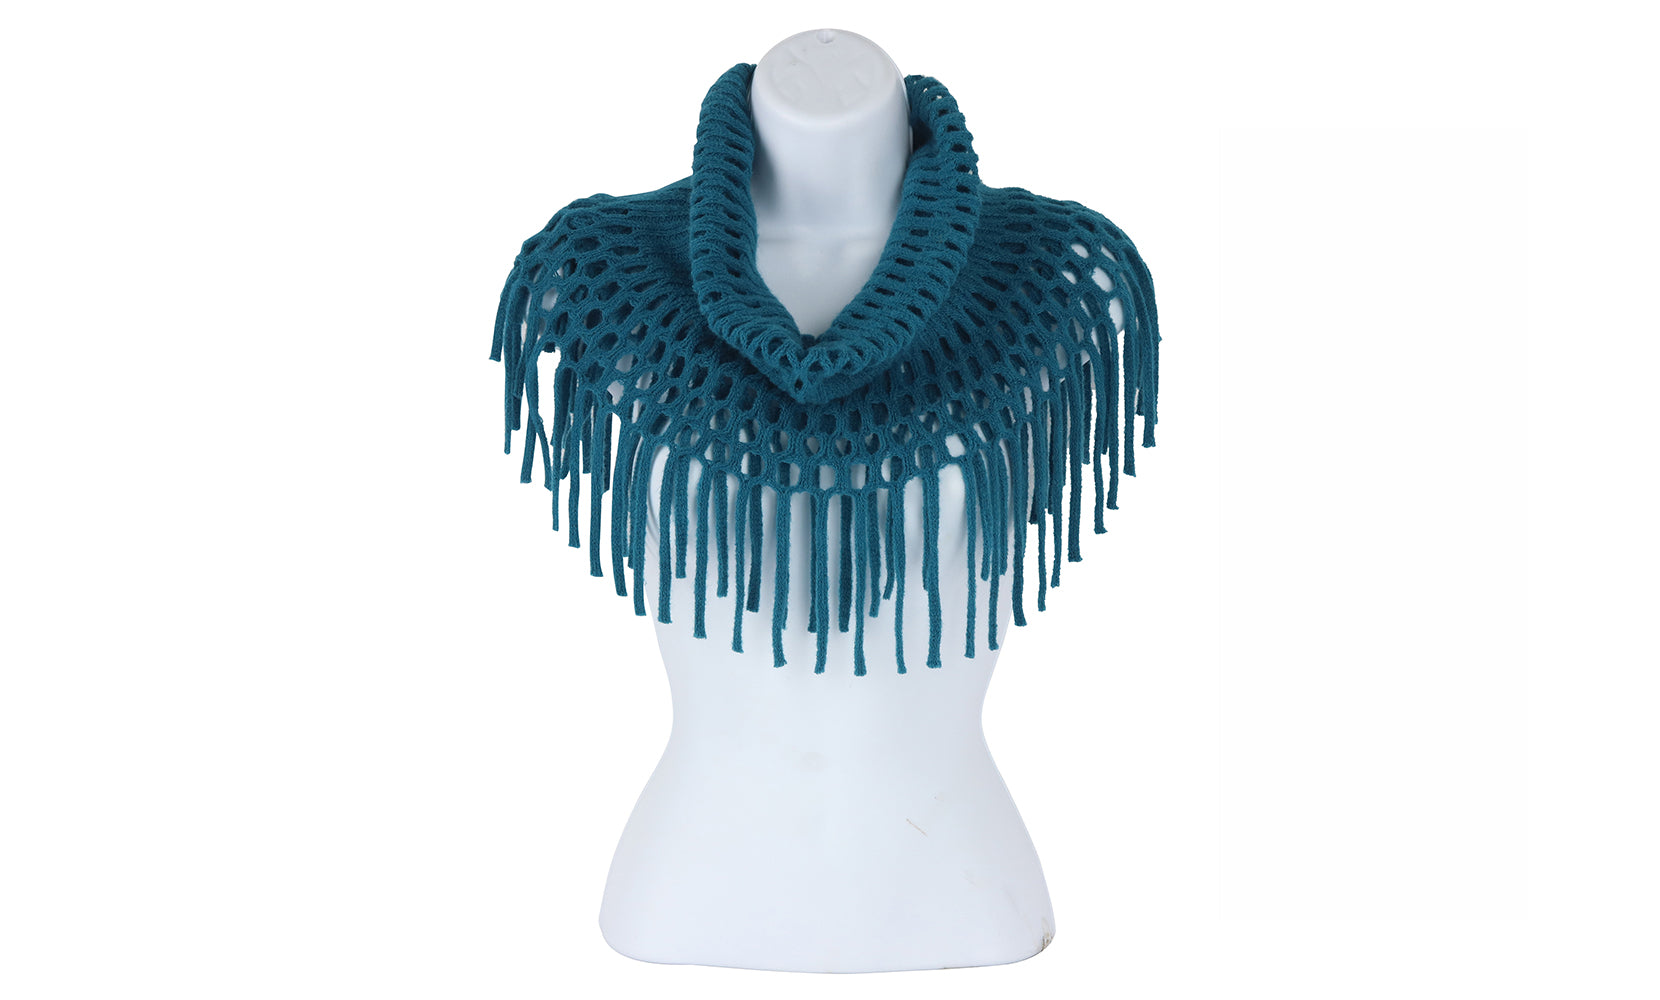 Fringe Benefits Open Weave Infinity Scarf